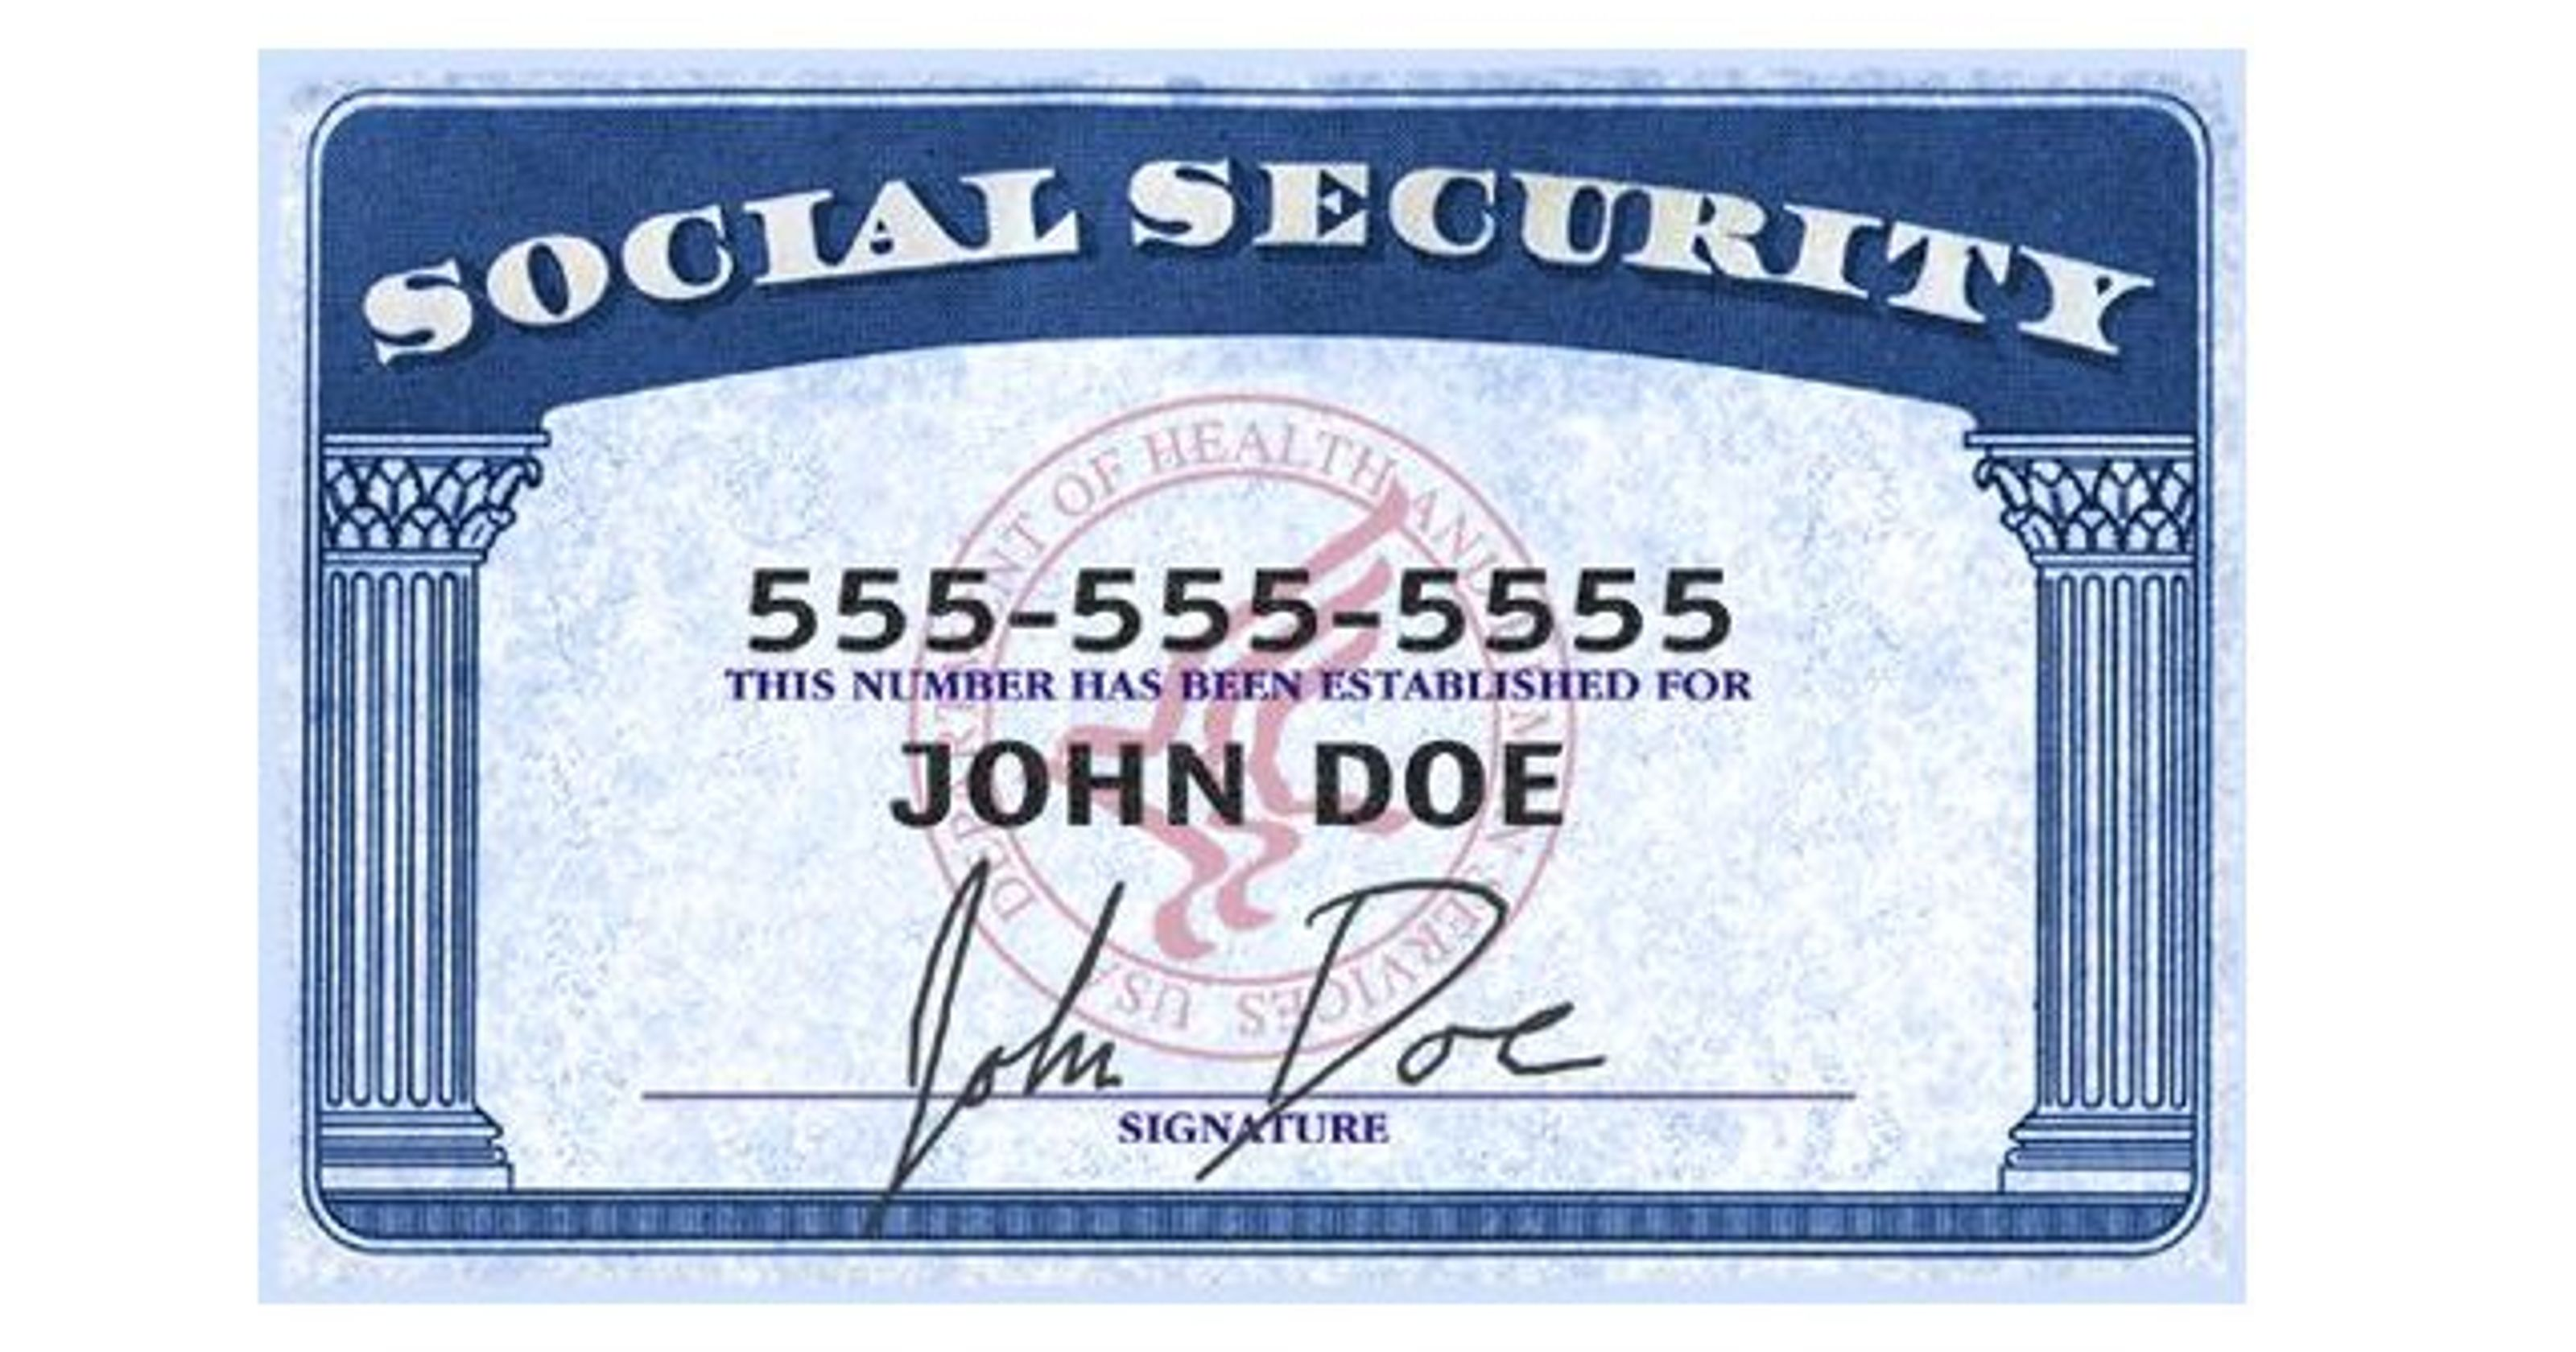 Wealth Benefits Two - Help Waters Risk Can Longevity Social Security With